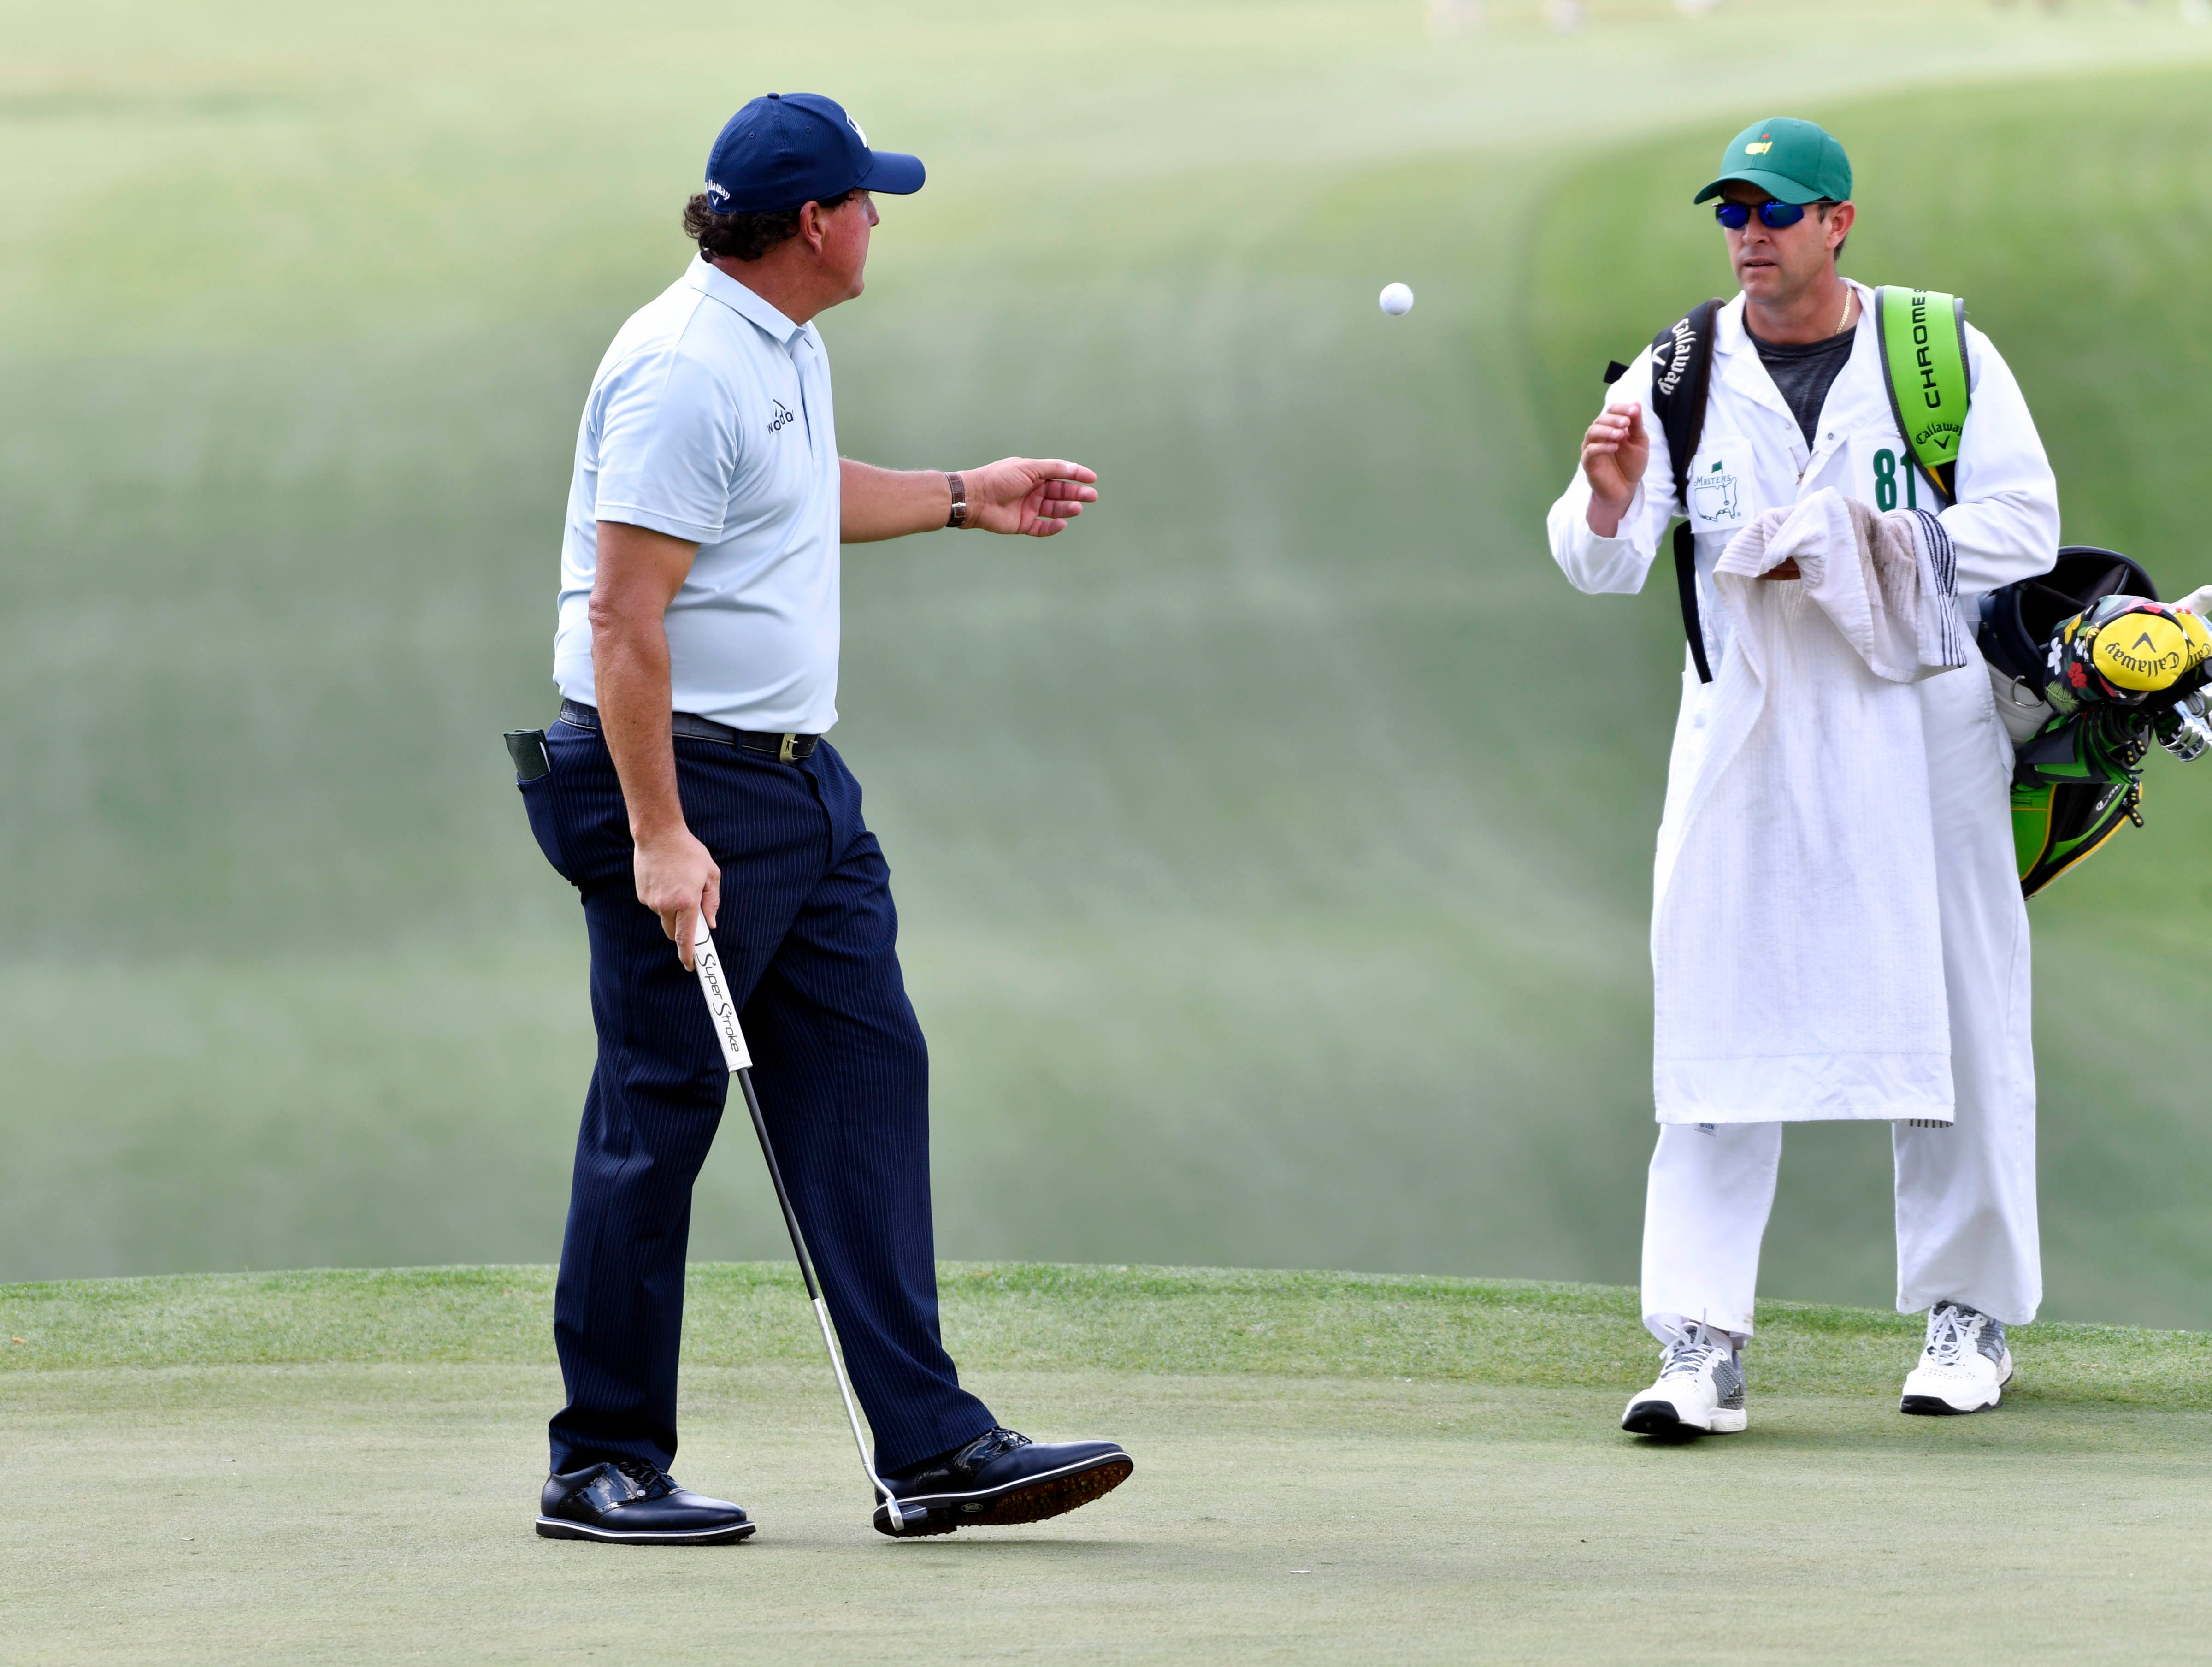 Phil Mickelson tosses his ball to caddie Tim Mickelson on the seventh green during the first round of the Masters.